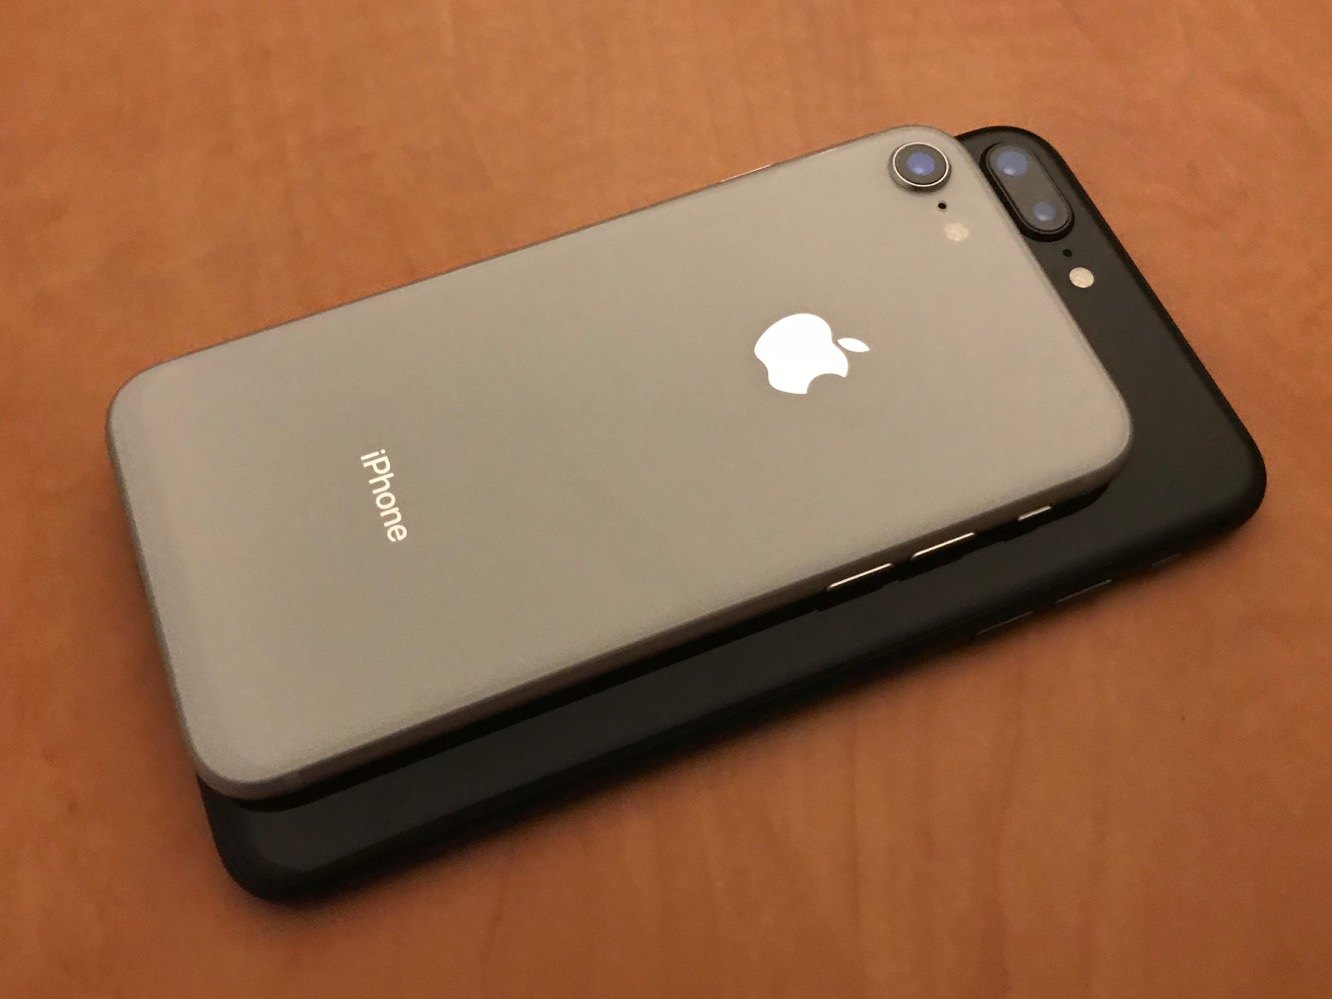 IPhone 8 news: Battery problems reported in China; Apple currently investigating issue